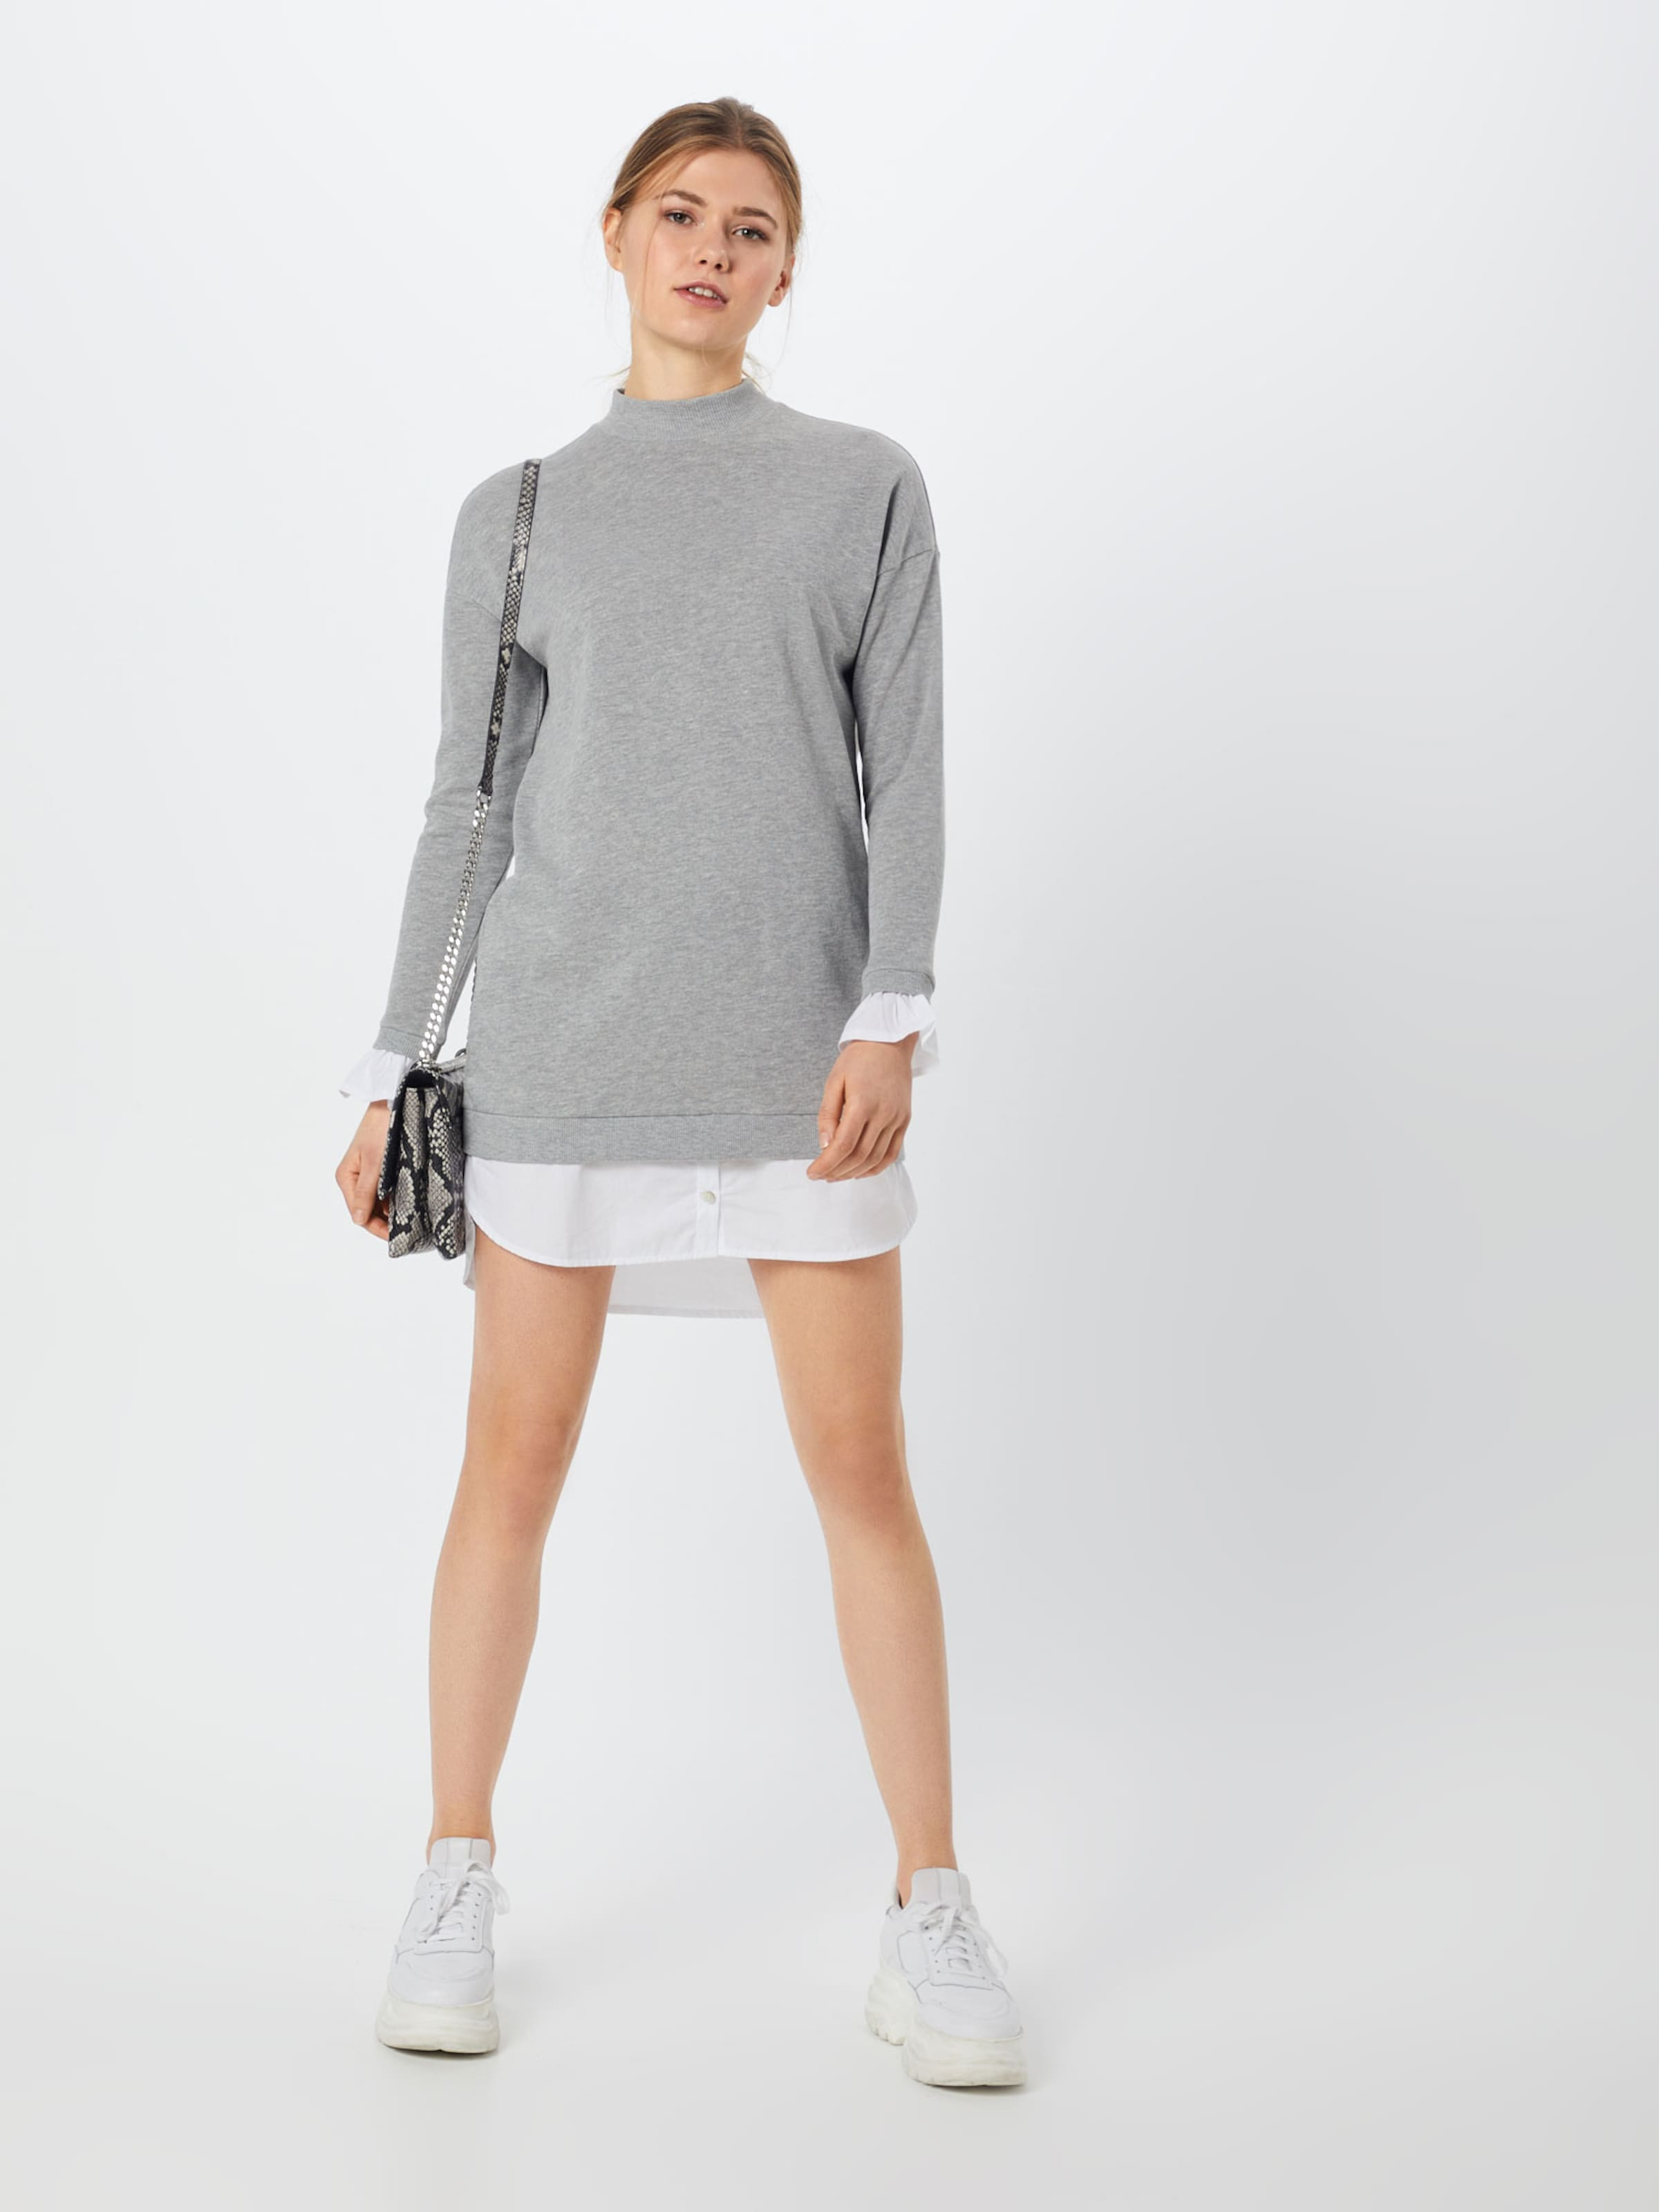 Robe Dresses By GrisBlanc Edc Sweatdress Knitted' 'eos En Esprit POkXwZuTi